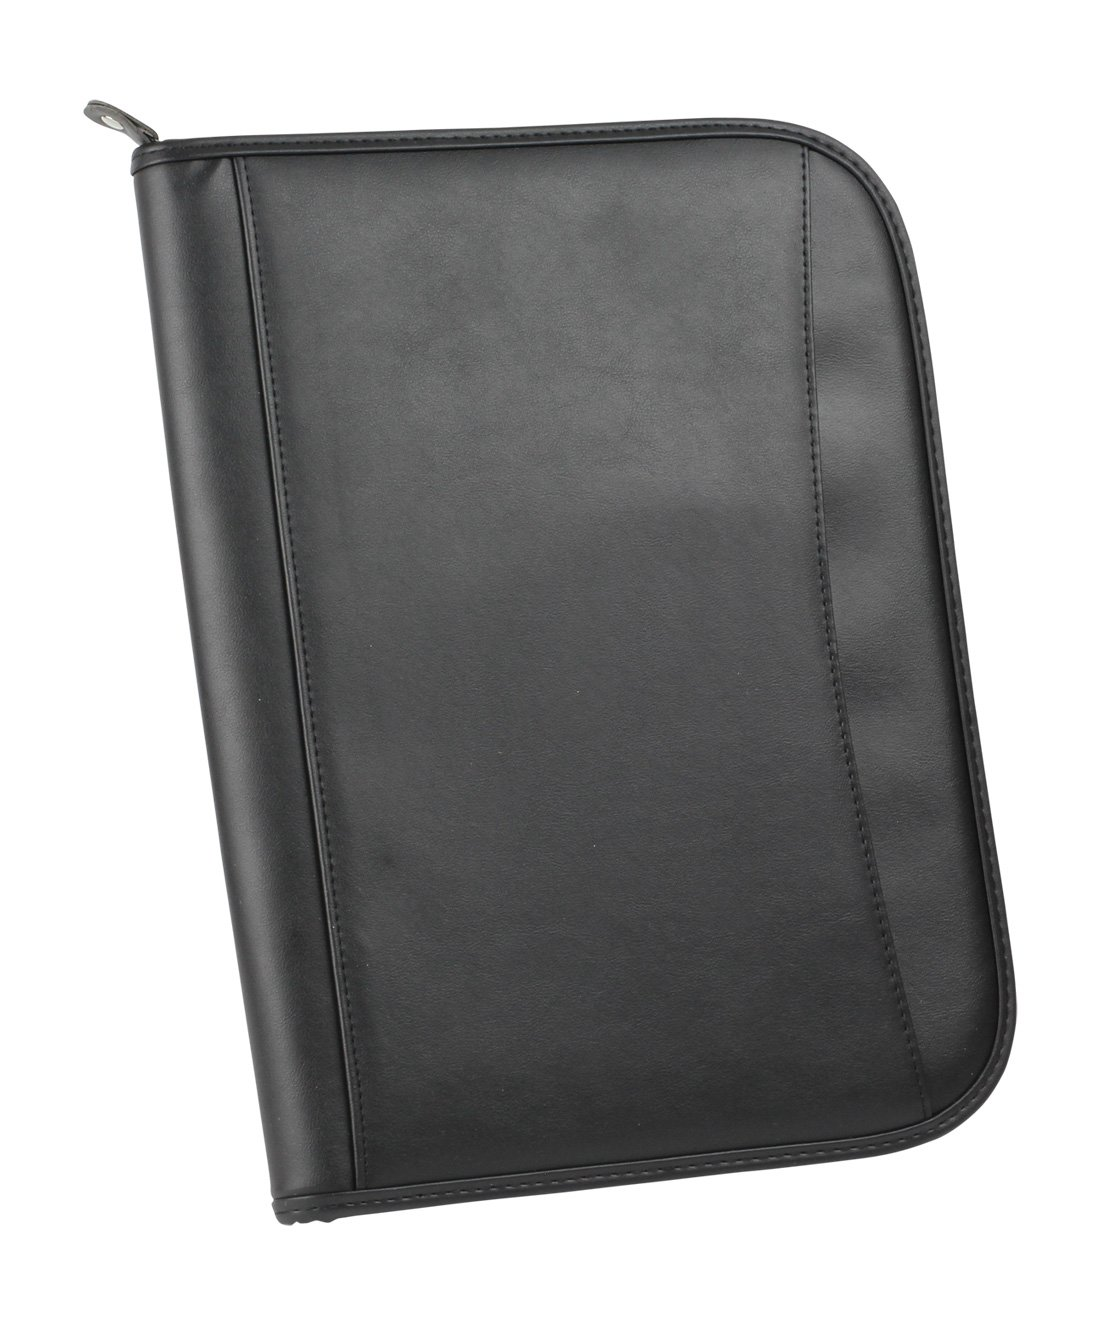 Professional Padfolio Organizer Documents Holder with Calculator Legal Notepad and Pen Holder